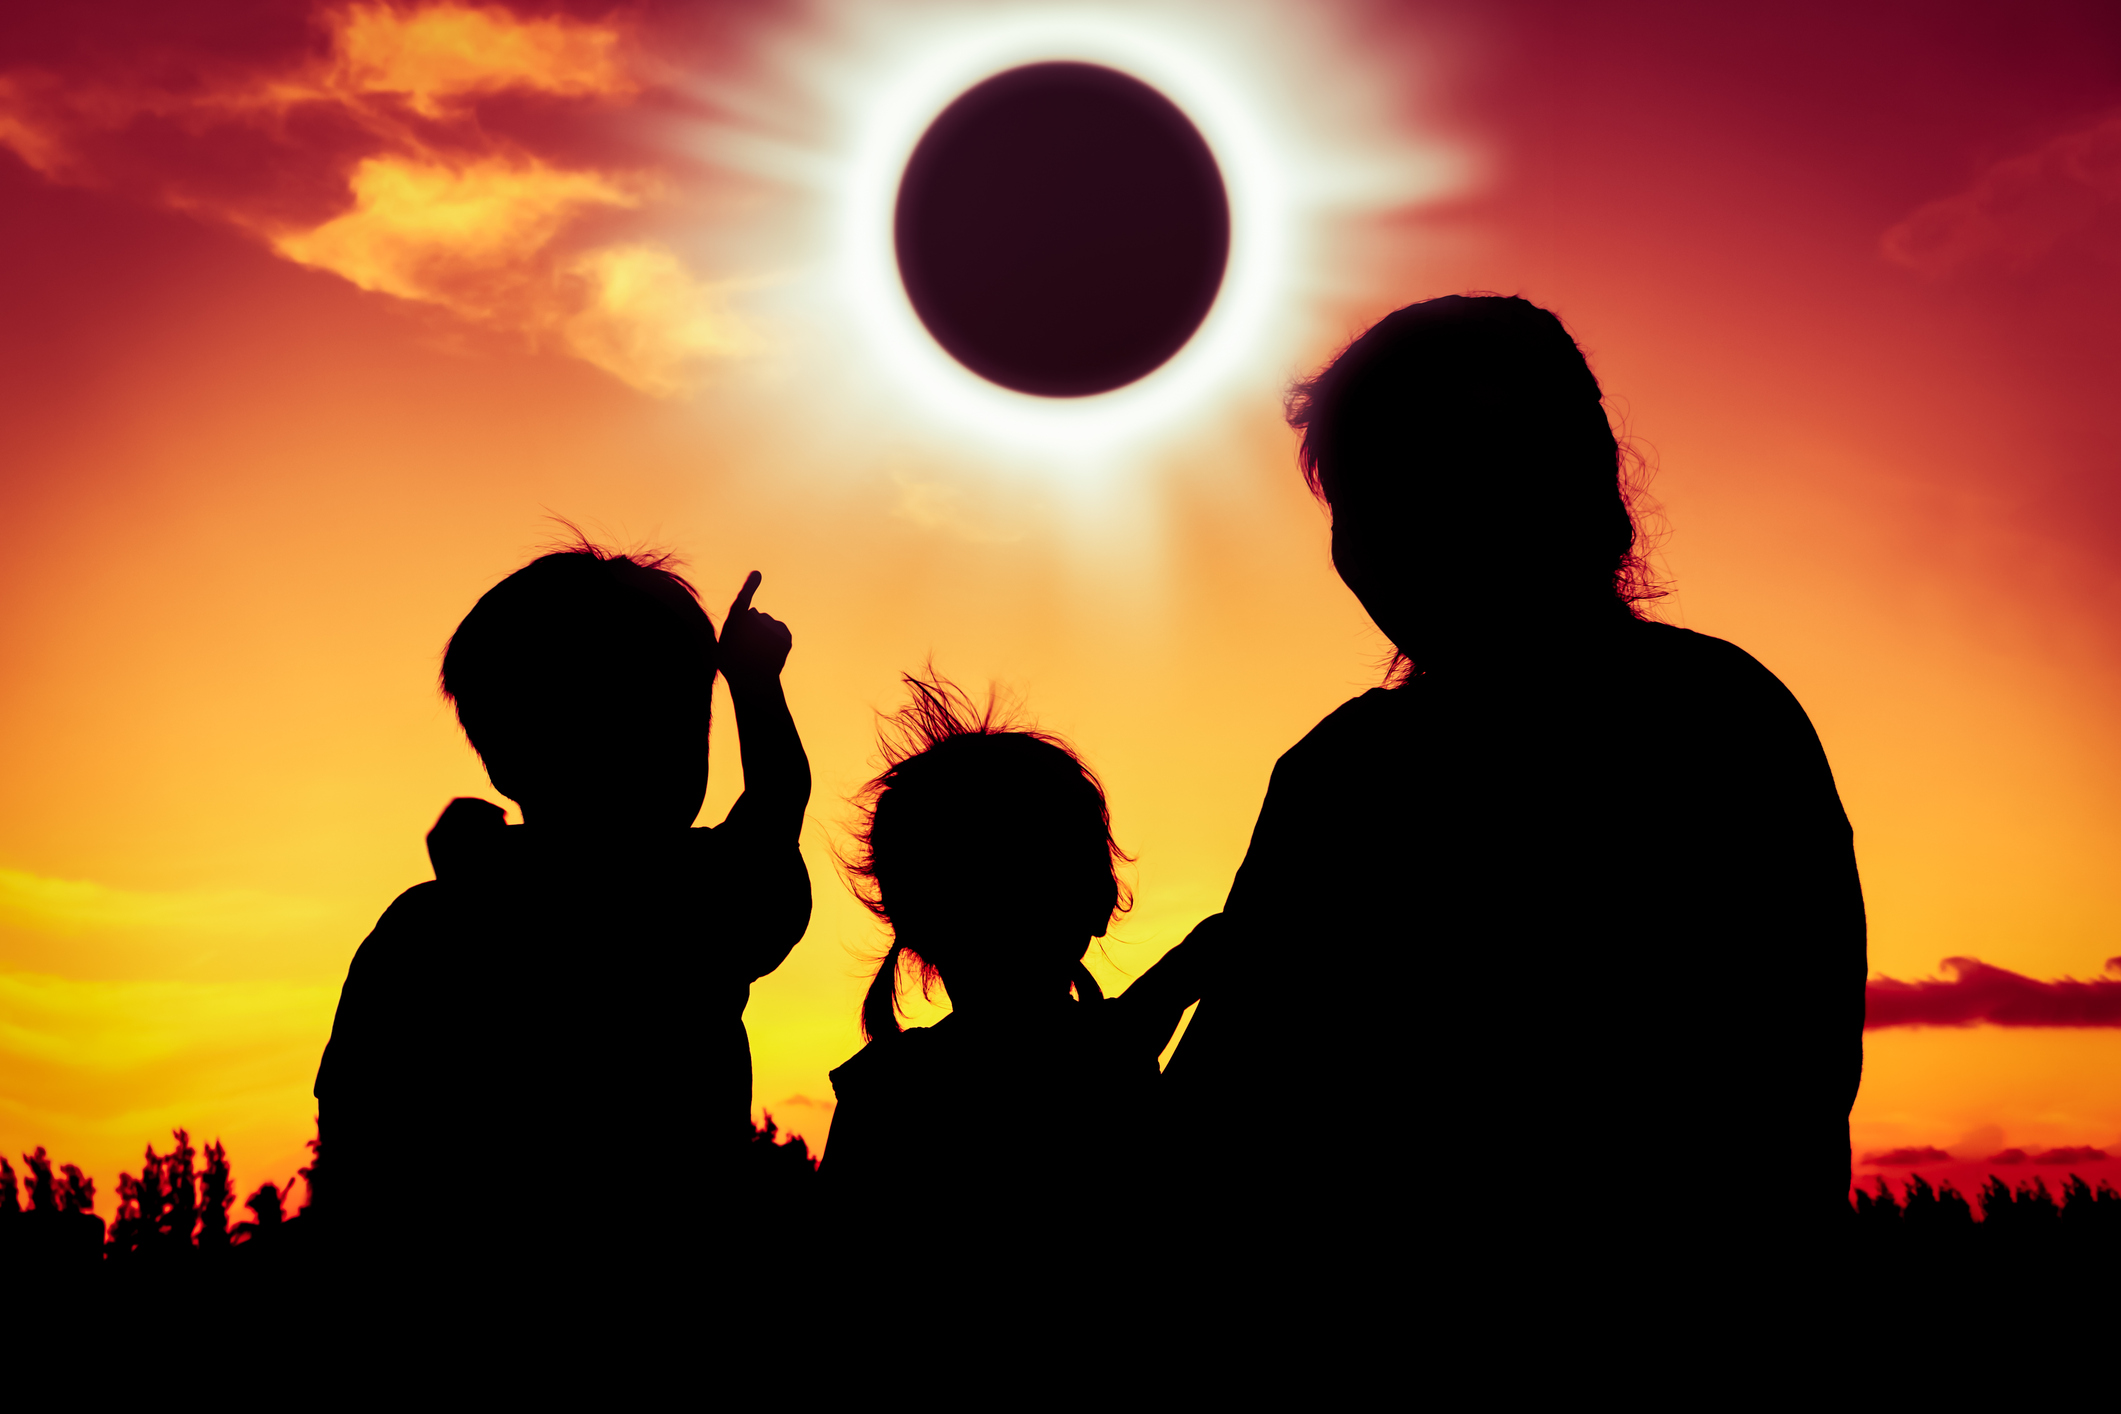 View of a family watching total solar eclipse. Natural phenomenon. Silhouette back view of family sitting and relaxing together. Boy point to solar eclipse on gold sky background. Happy family spending time together. Outdoor. (Photo: ©iStockphoto.com/kdshutterman)